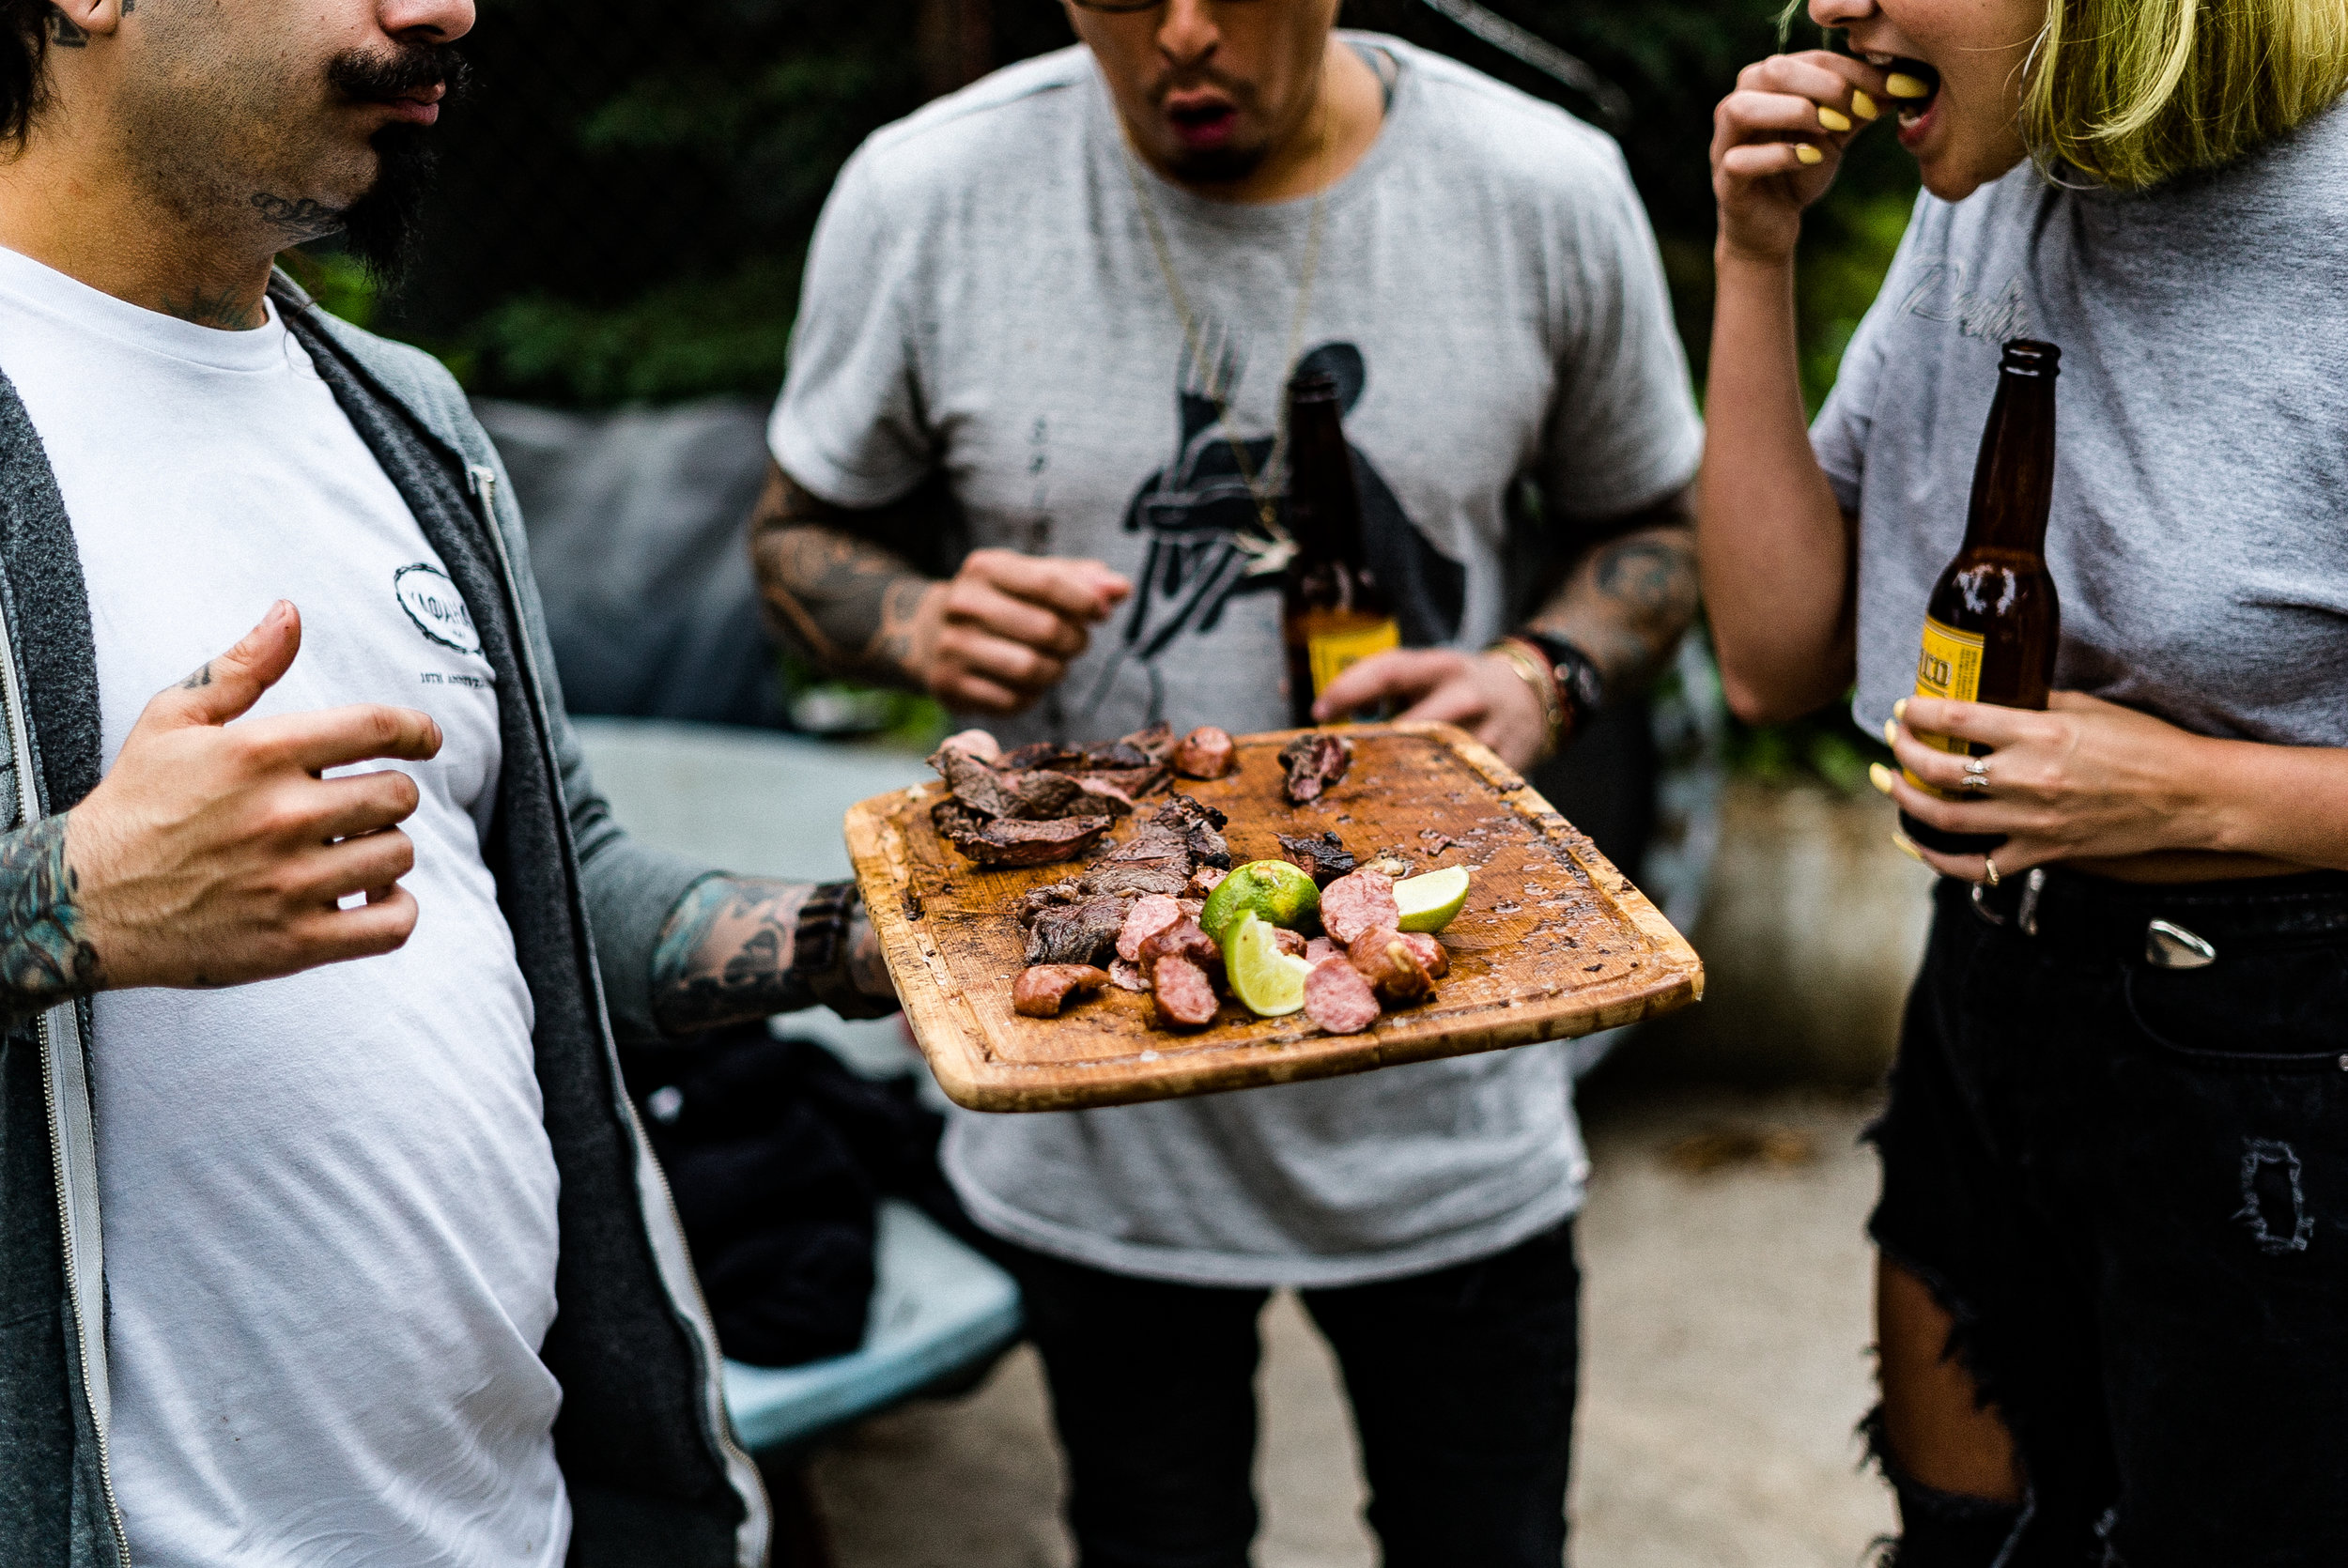 Brazilian chef, serves up steak to party guests.